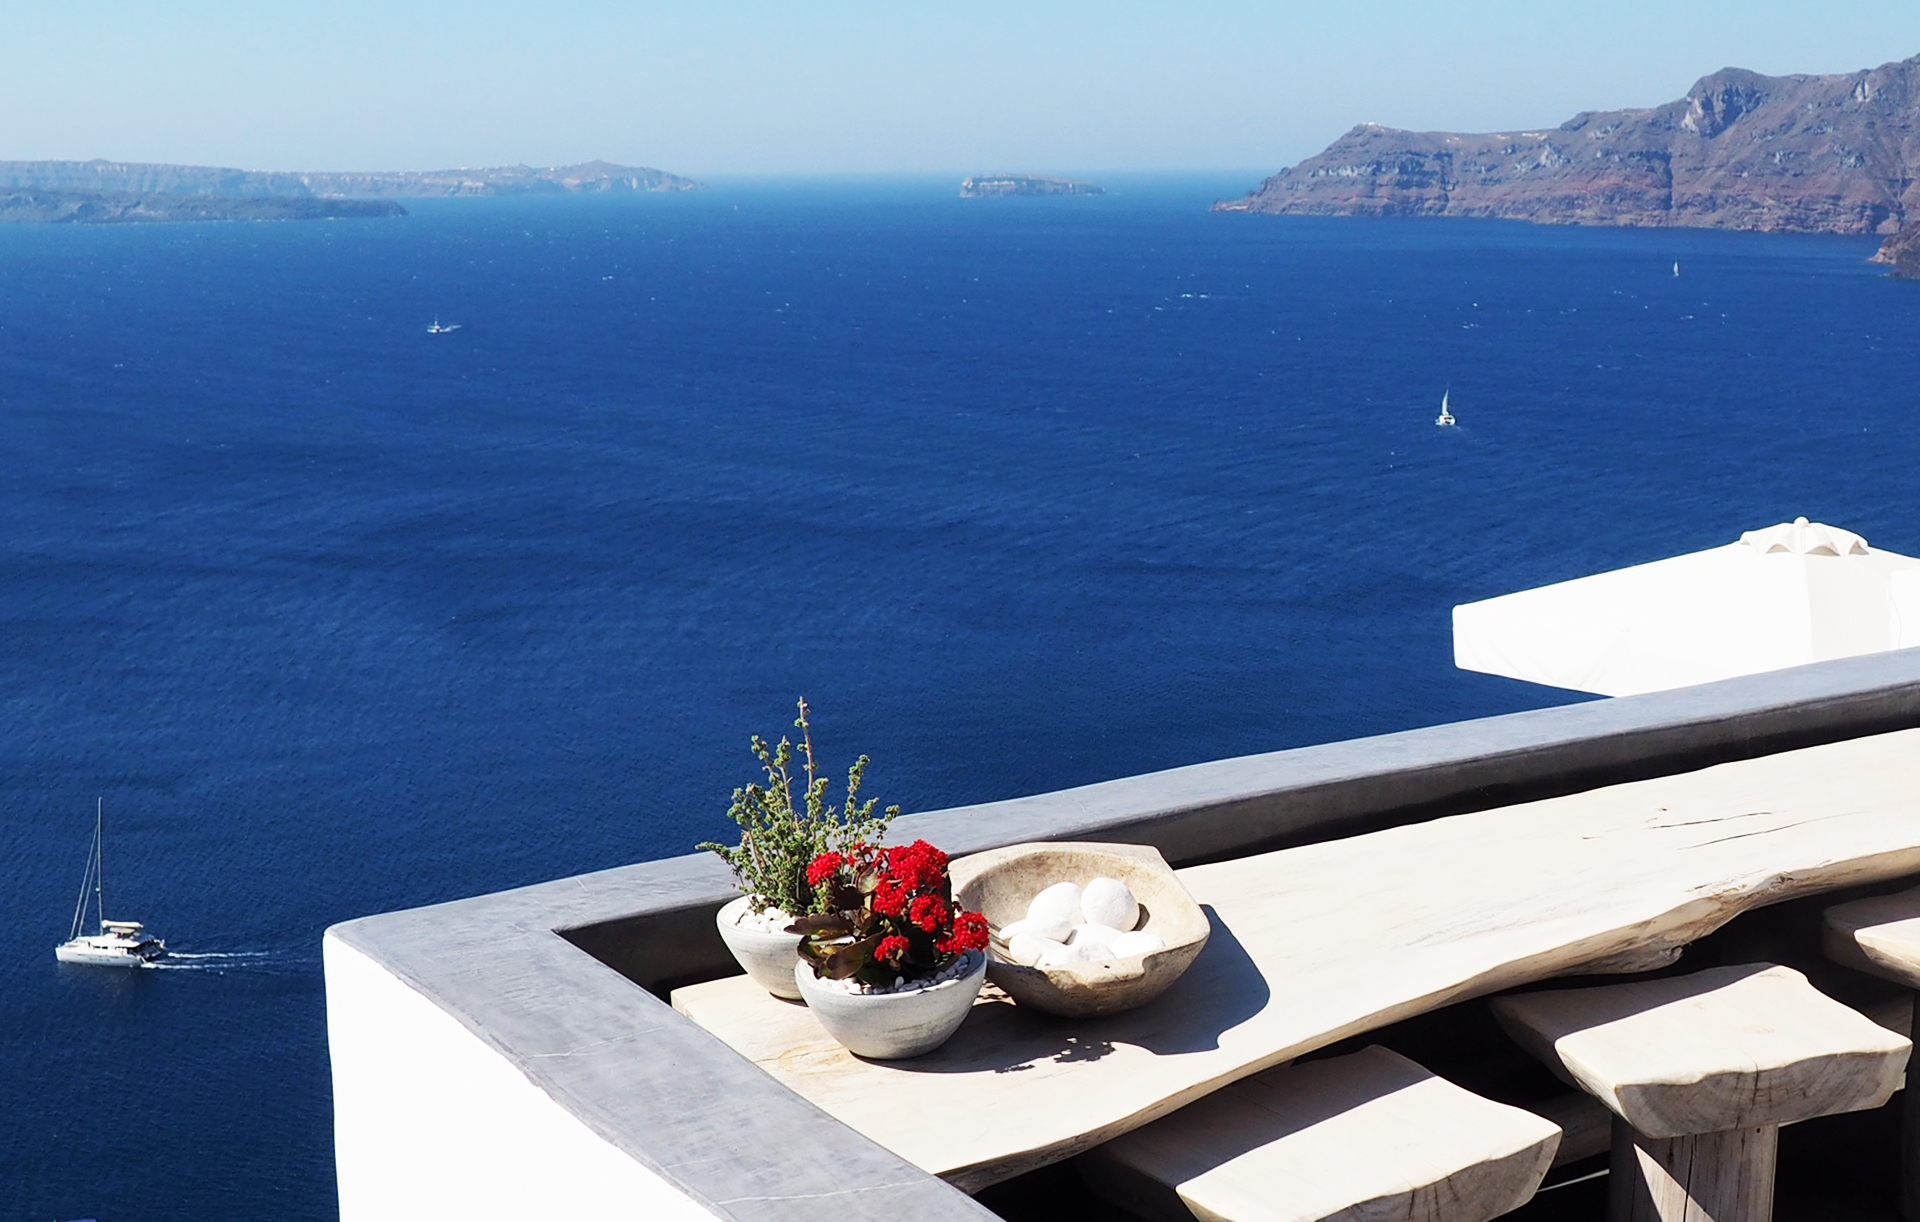 Hot summer day, view of the blue water and sky of Santorini's caldera from Oia